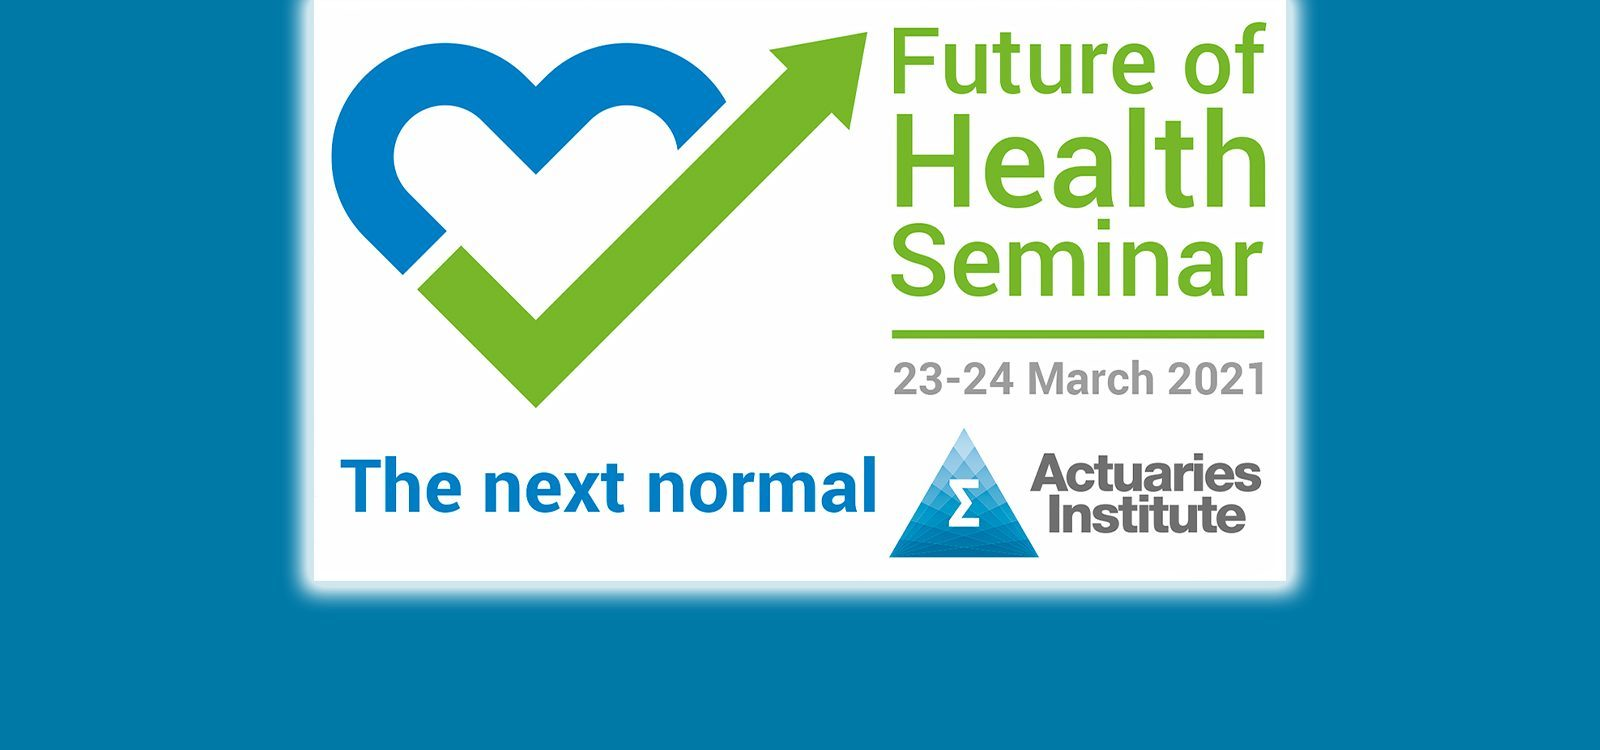 Plenary highlights of the Future of Health Seminar